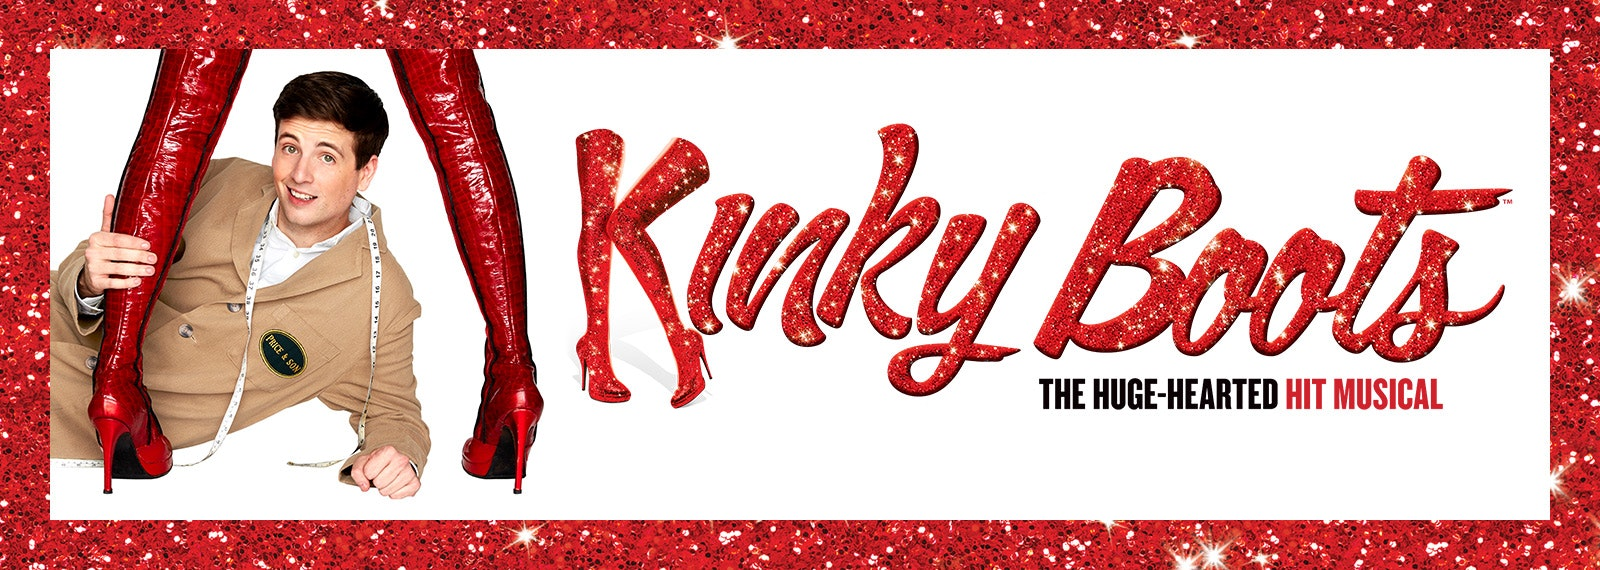 Kinky Boots the Musical Tickets, Packages and Experiences